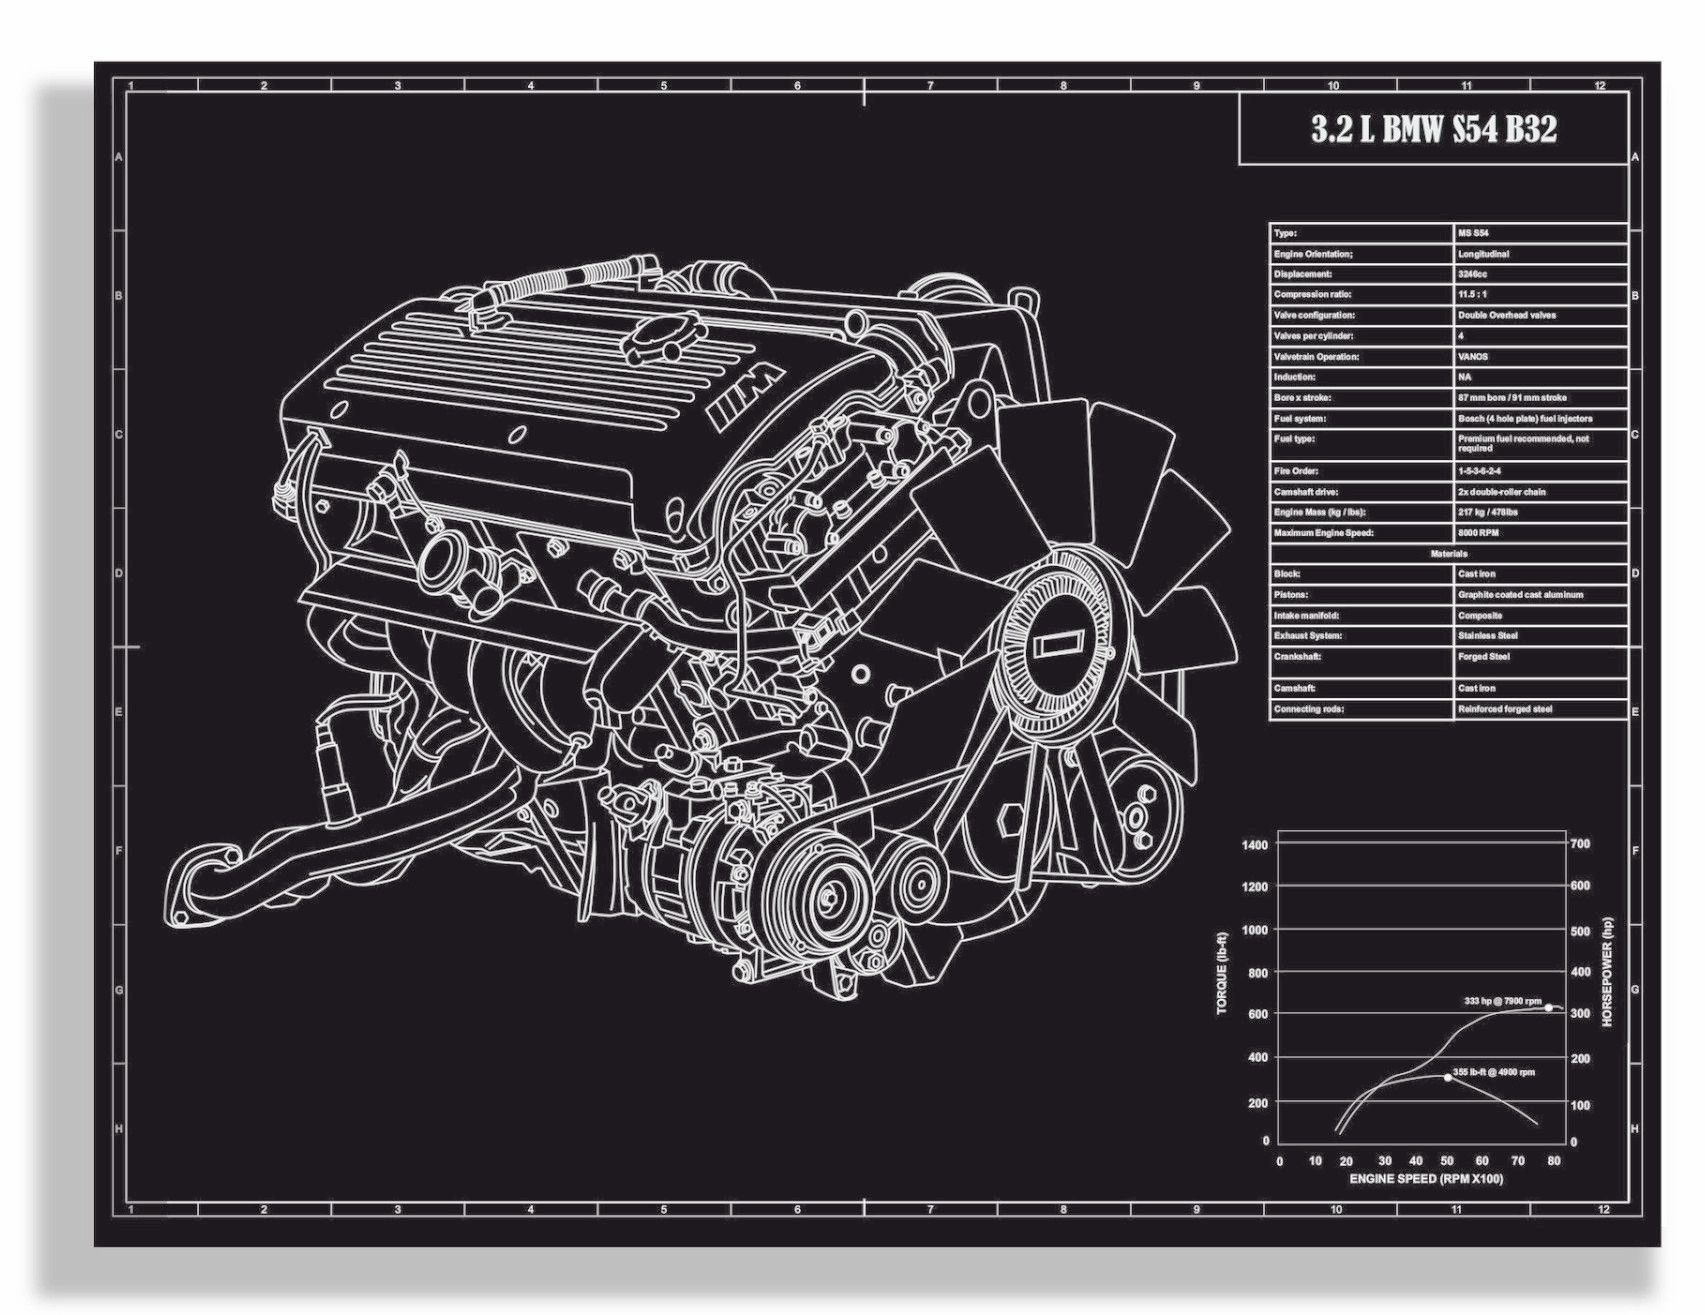 small resolution of bmw e46 m3 s54 b32 engine